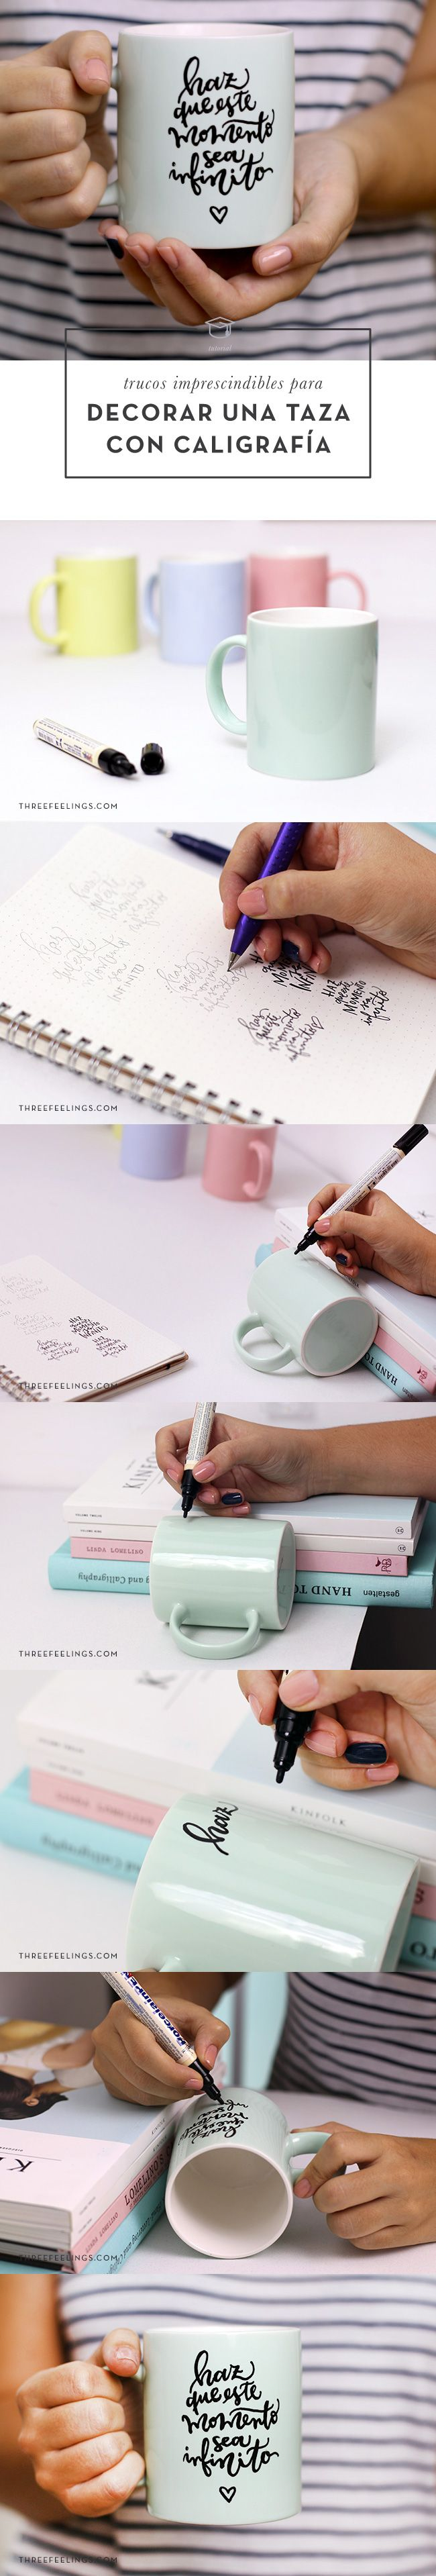 Trucos imprescindibles para decorar una taza con caligrafía paso a paso. #TUTORIAL #DIY How to personalize your own coffee mug with calligraphy